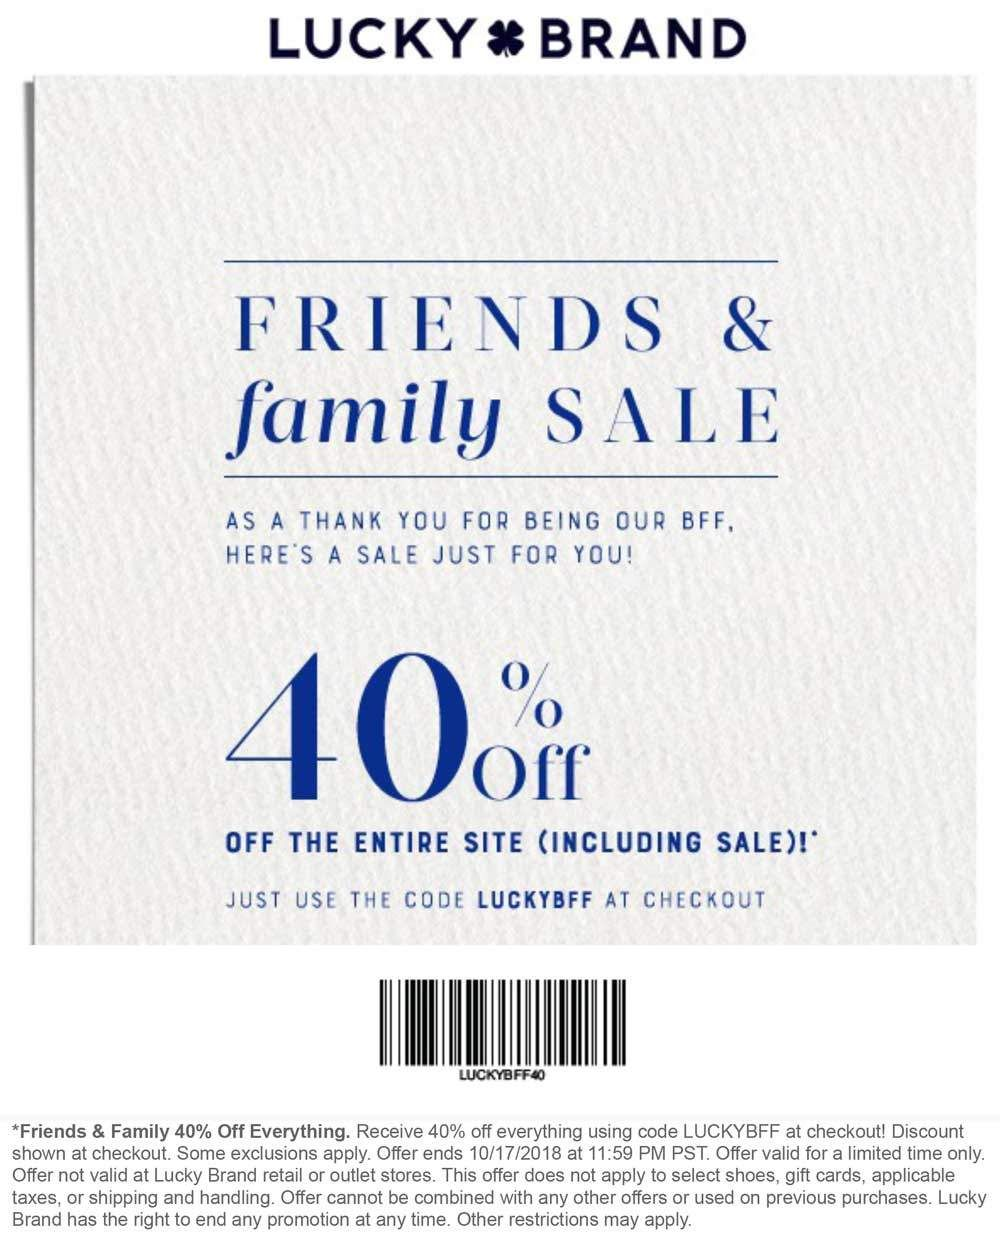 Pinned October 12th Everything Is 40 Off At Luckybrand Or Online Via Promo Code Luckybff Thecouponsapp Shopping Coupons Lucky Brand Coupons